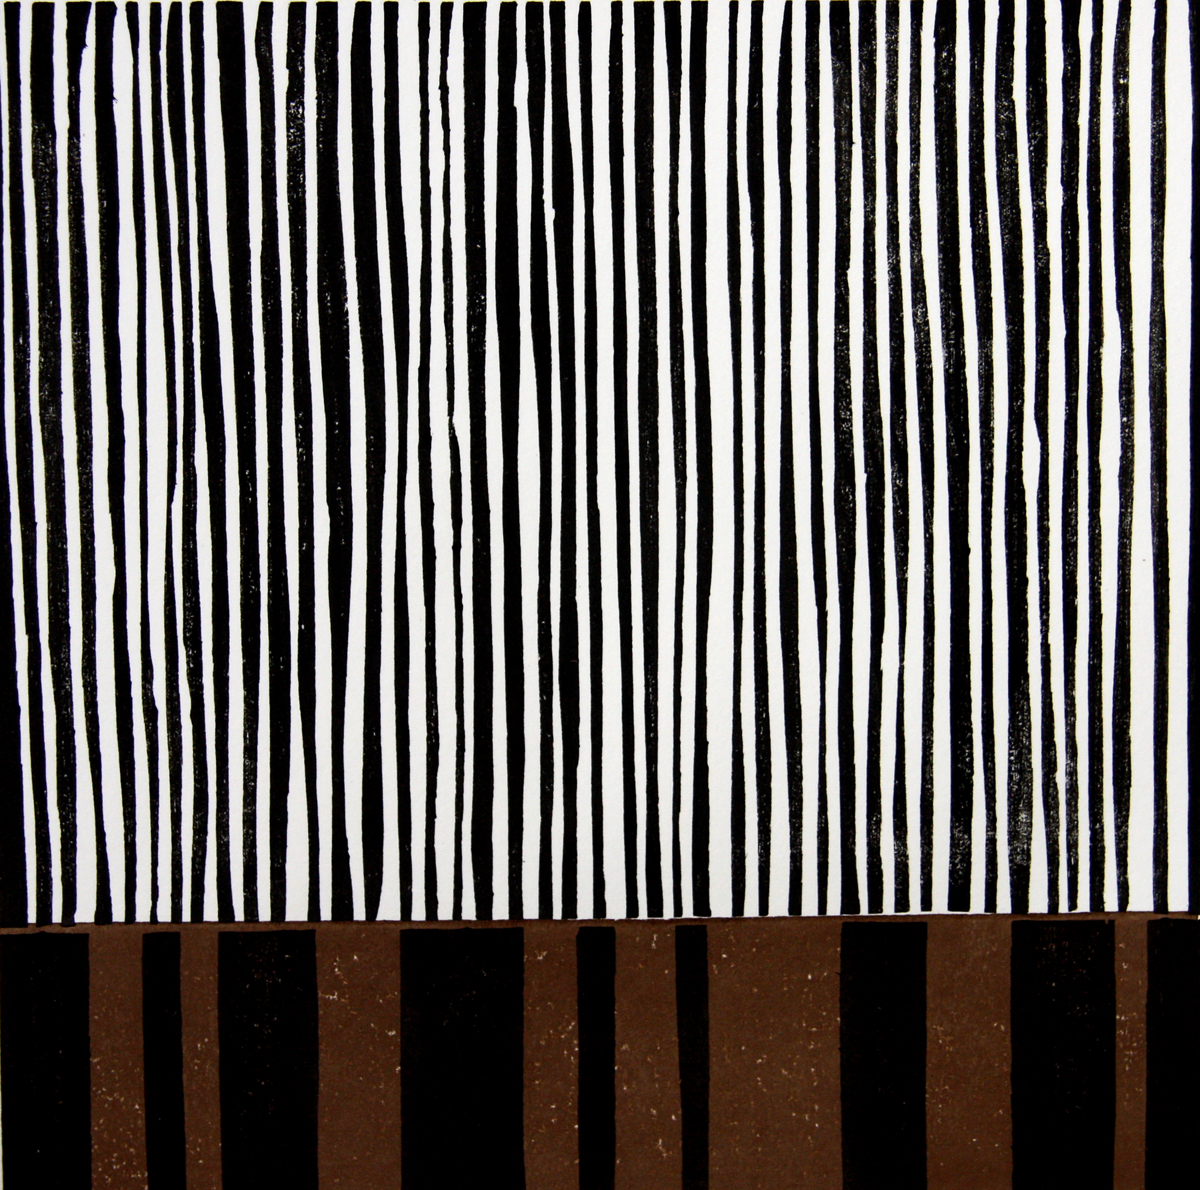 Black and Brown Stripes (large view)